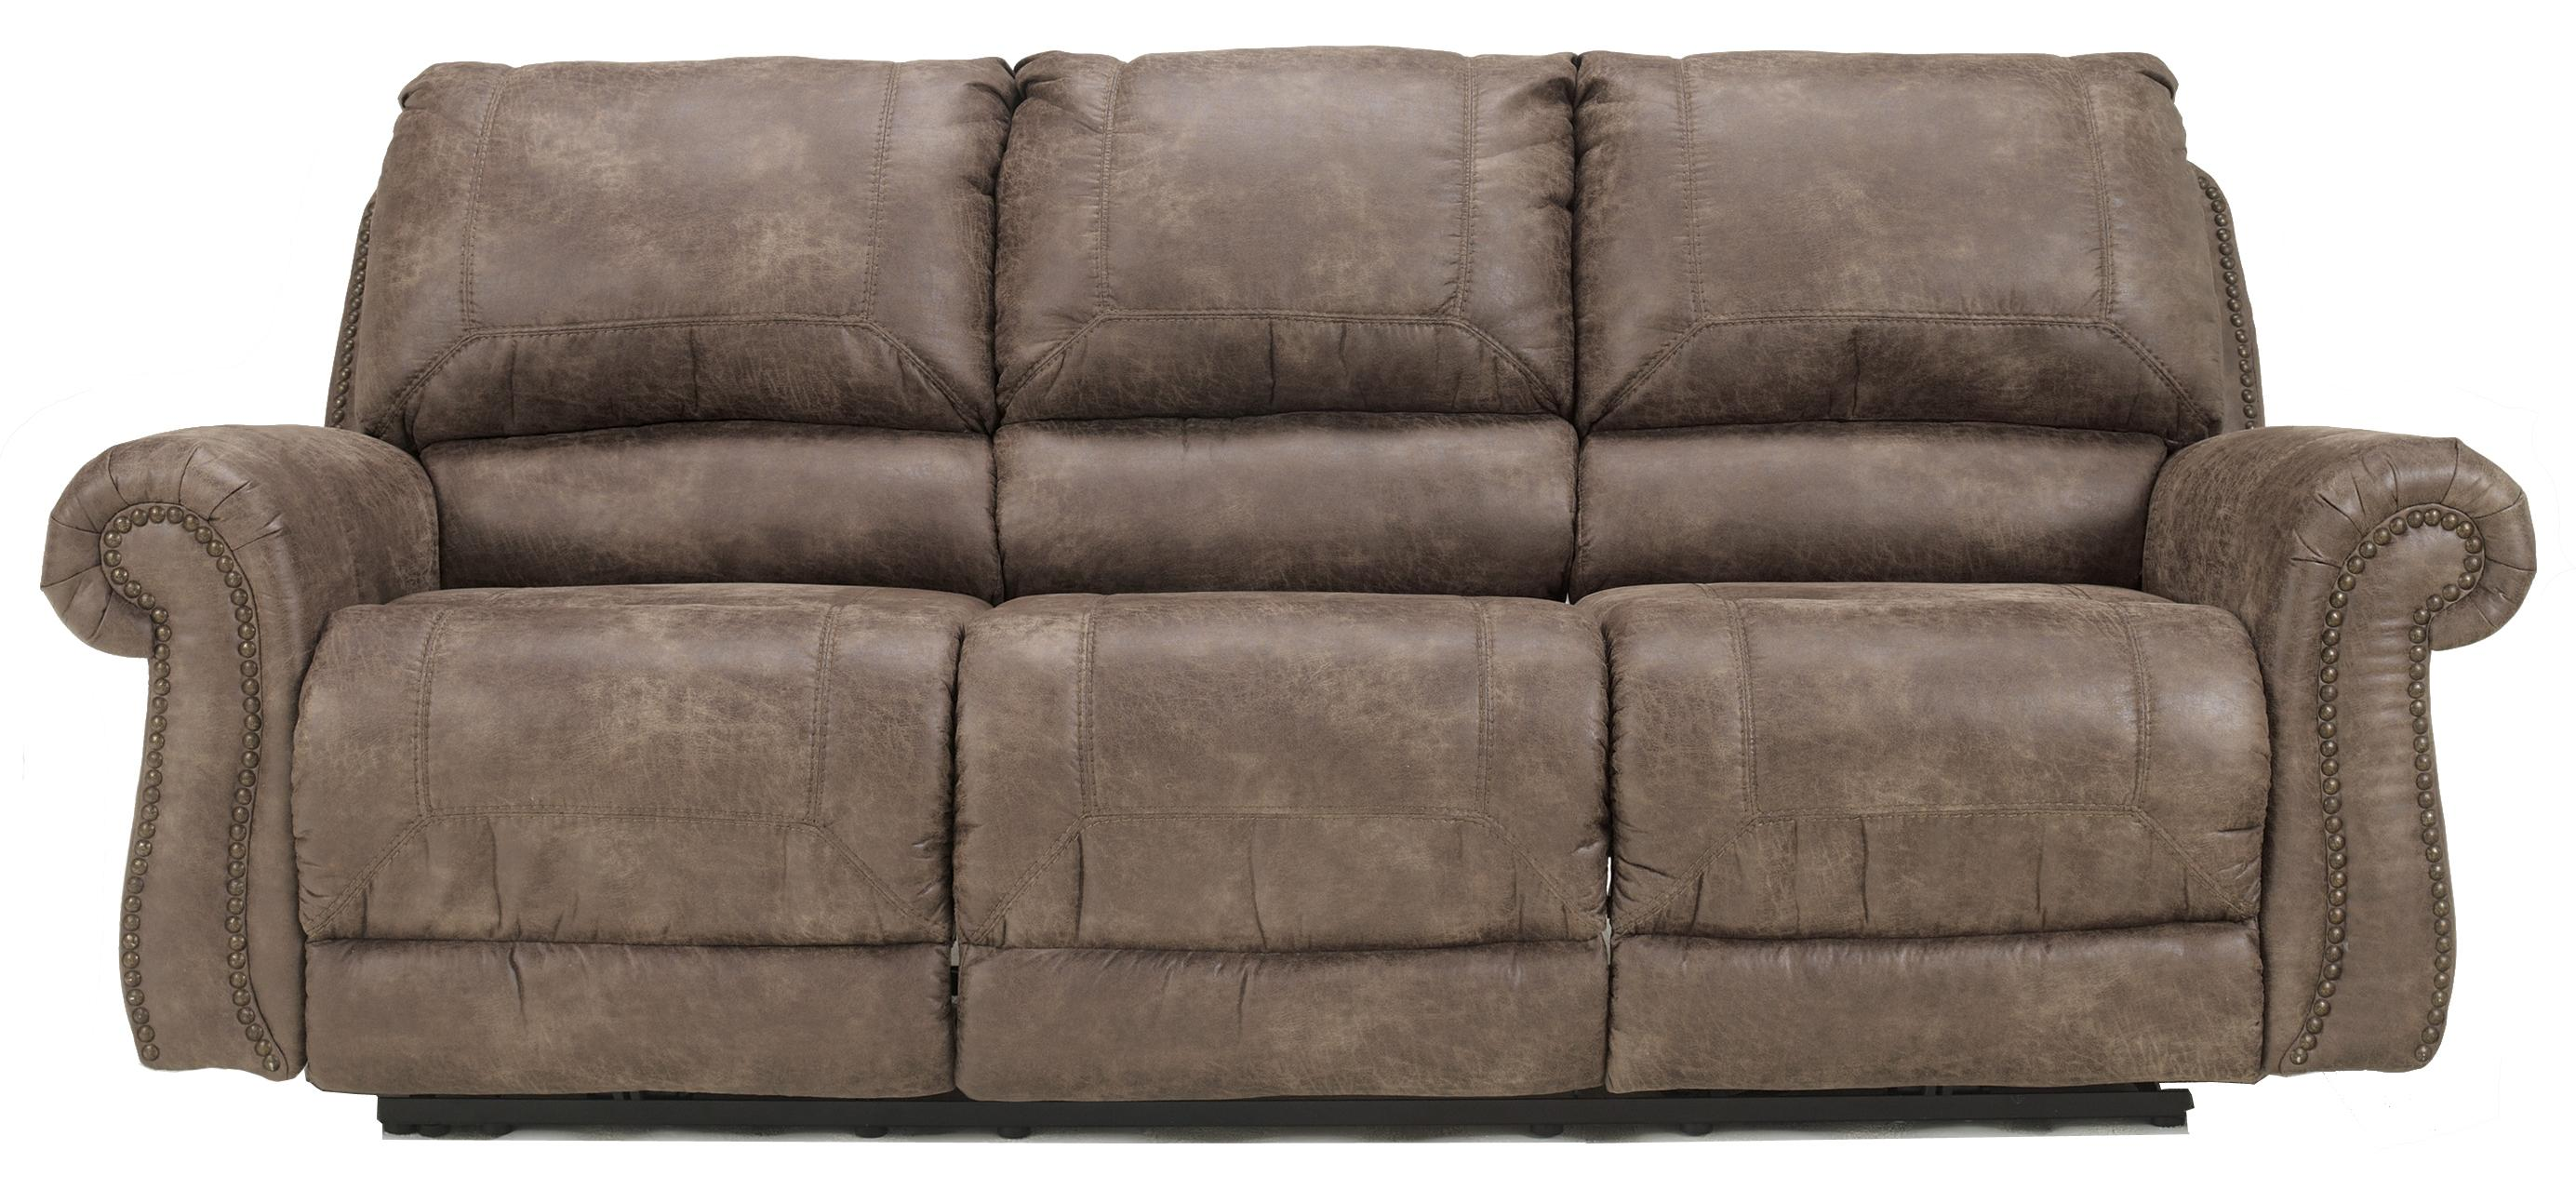 Signature Design by Ashley Oberson - Gunsmoke Reclining Power Sofa - Item Number: 7410087